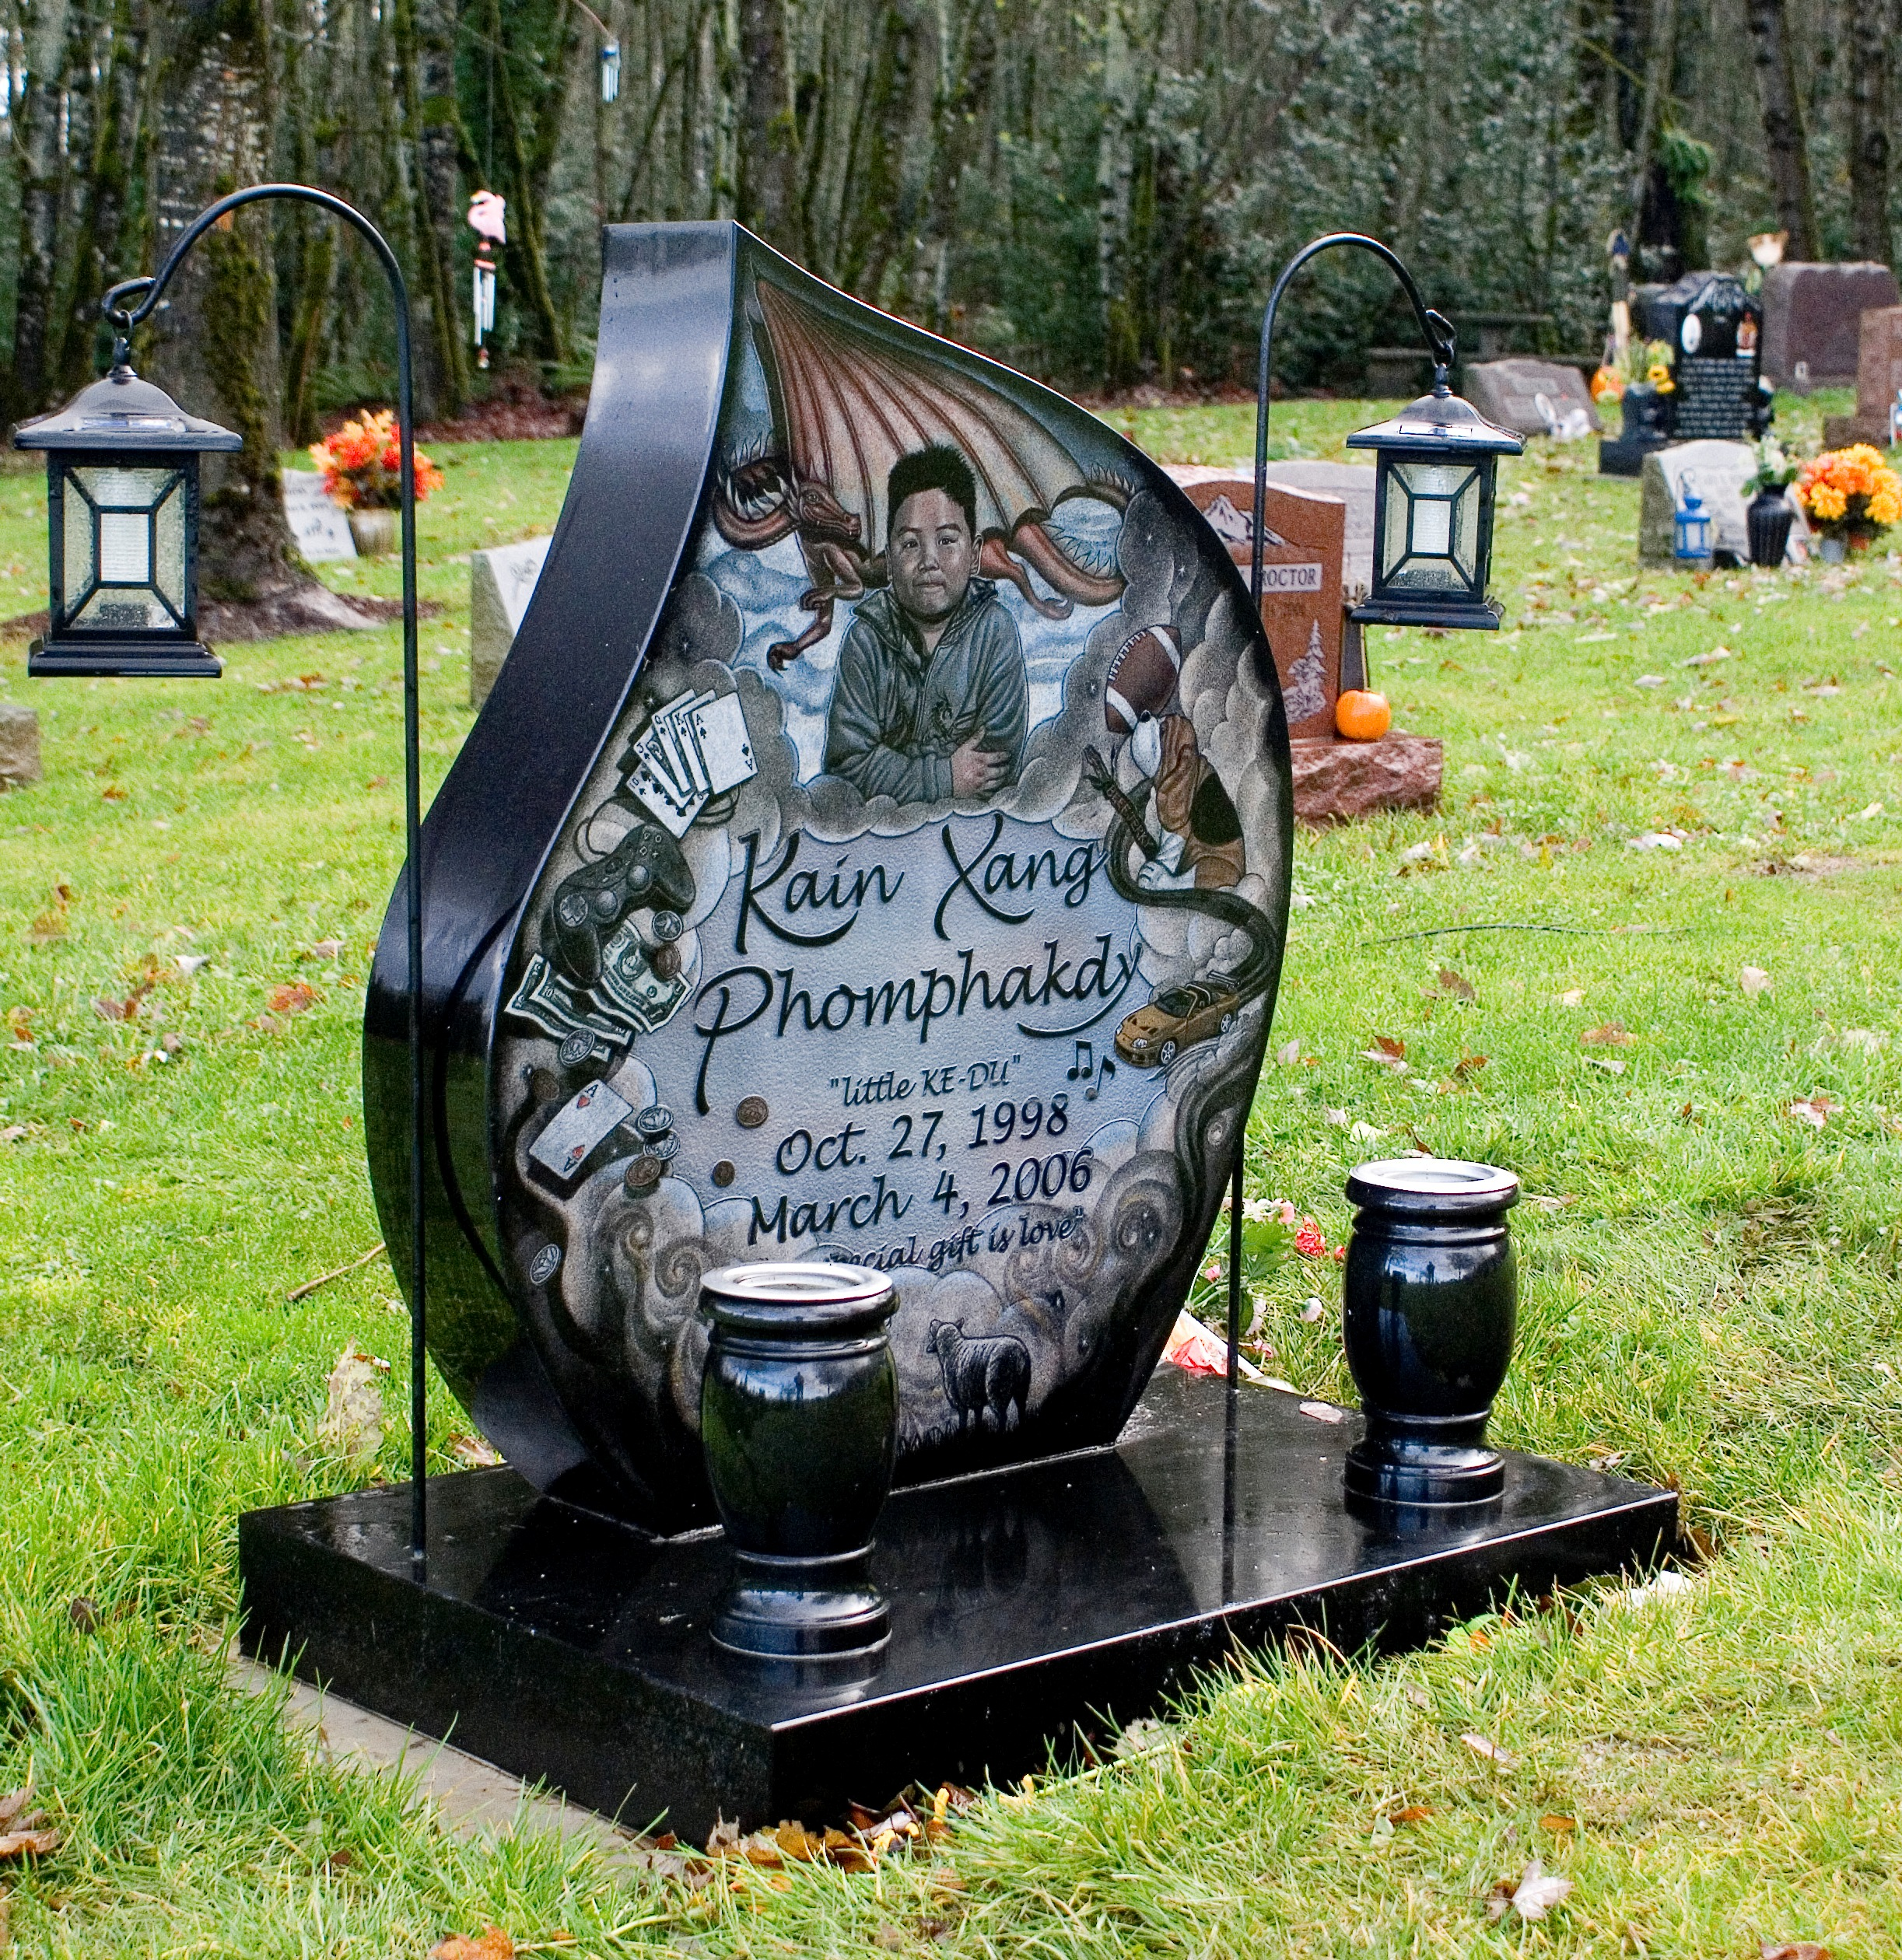 A black monument with hanging lanterns.